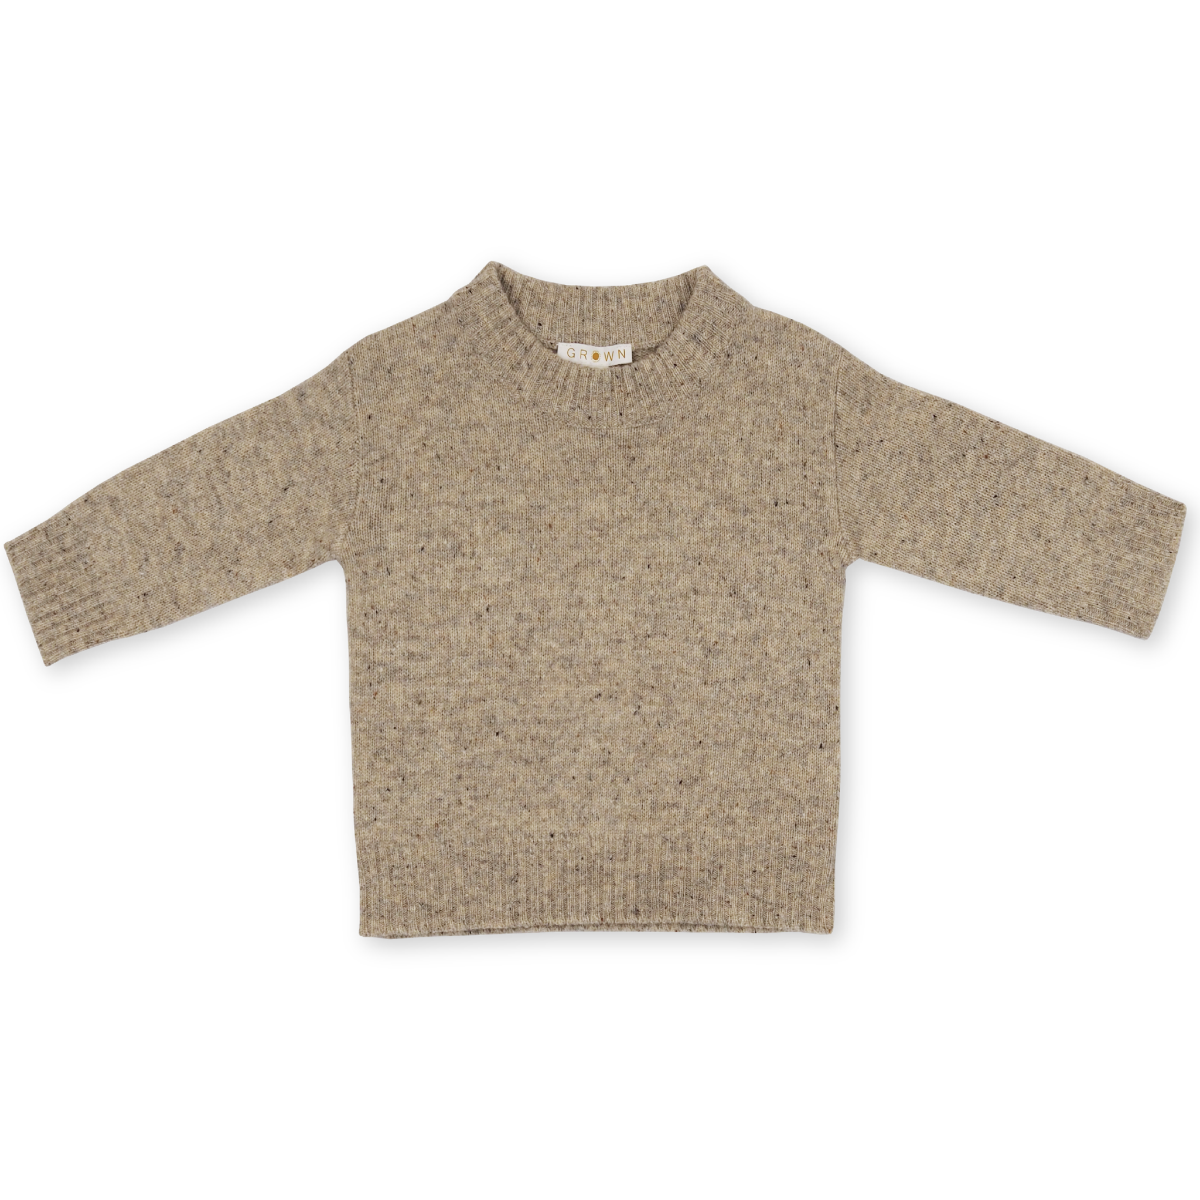 US stockist of Grown Clothing's gender neutral speckled stone sweater.  Made from extra fine Australian merino wool with a dropped shoulder and a rib finish at the neck, hem and cuffs.